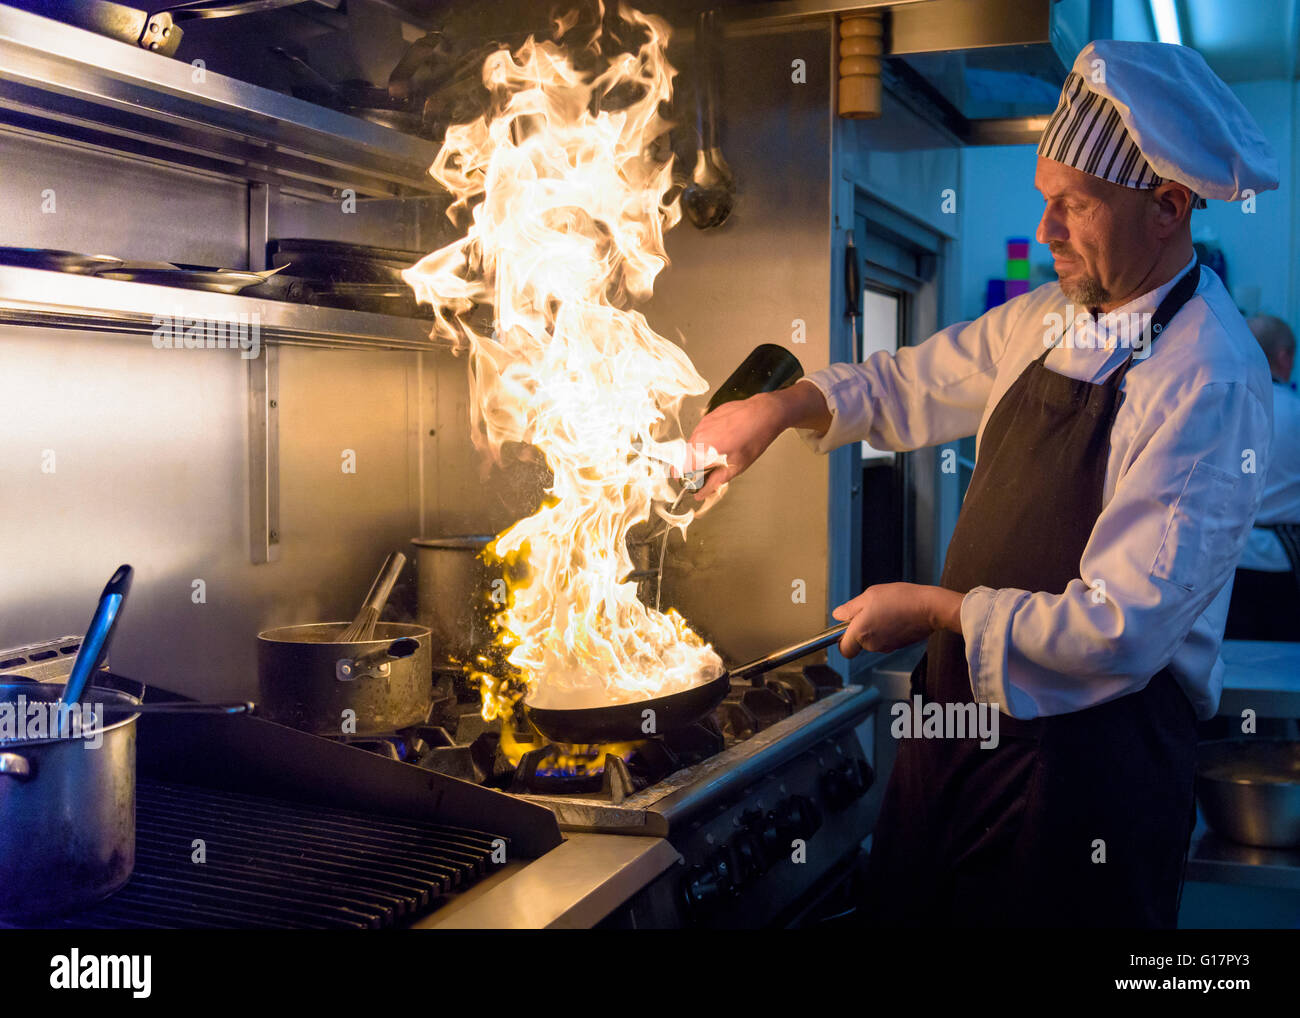 Chef with pan of flames in traditional Italian restaurant kitchen - Stock Image